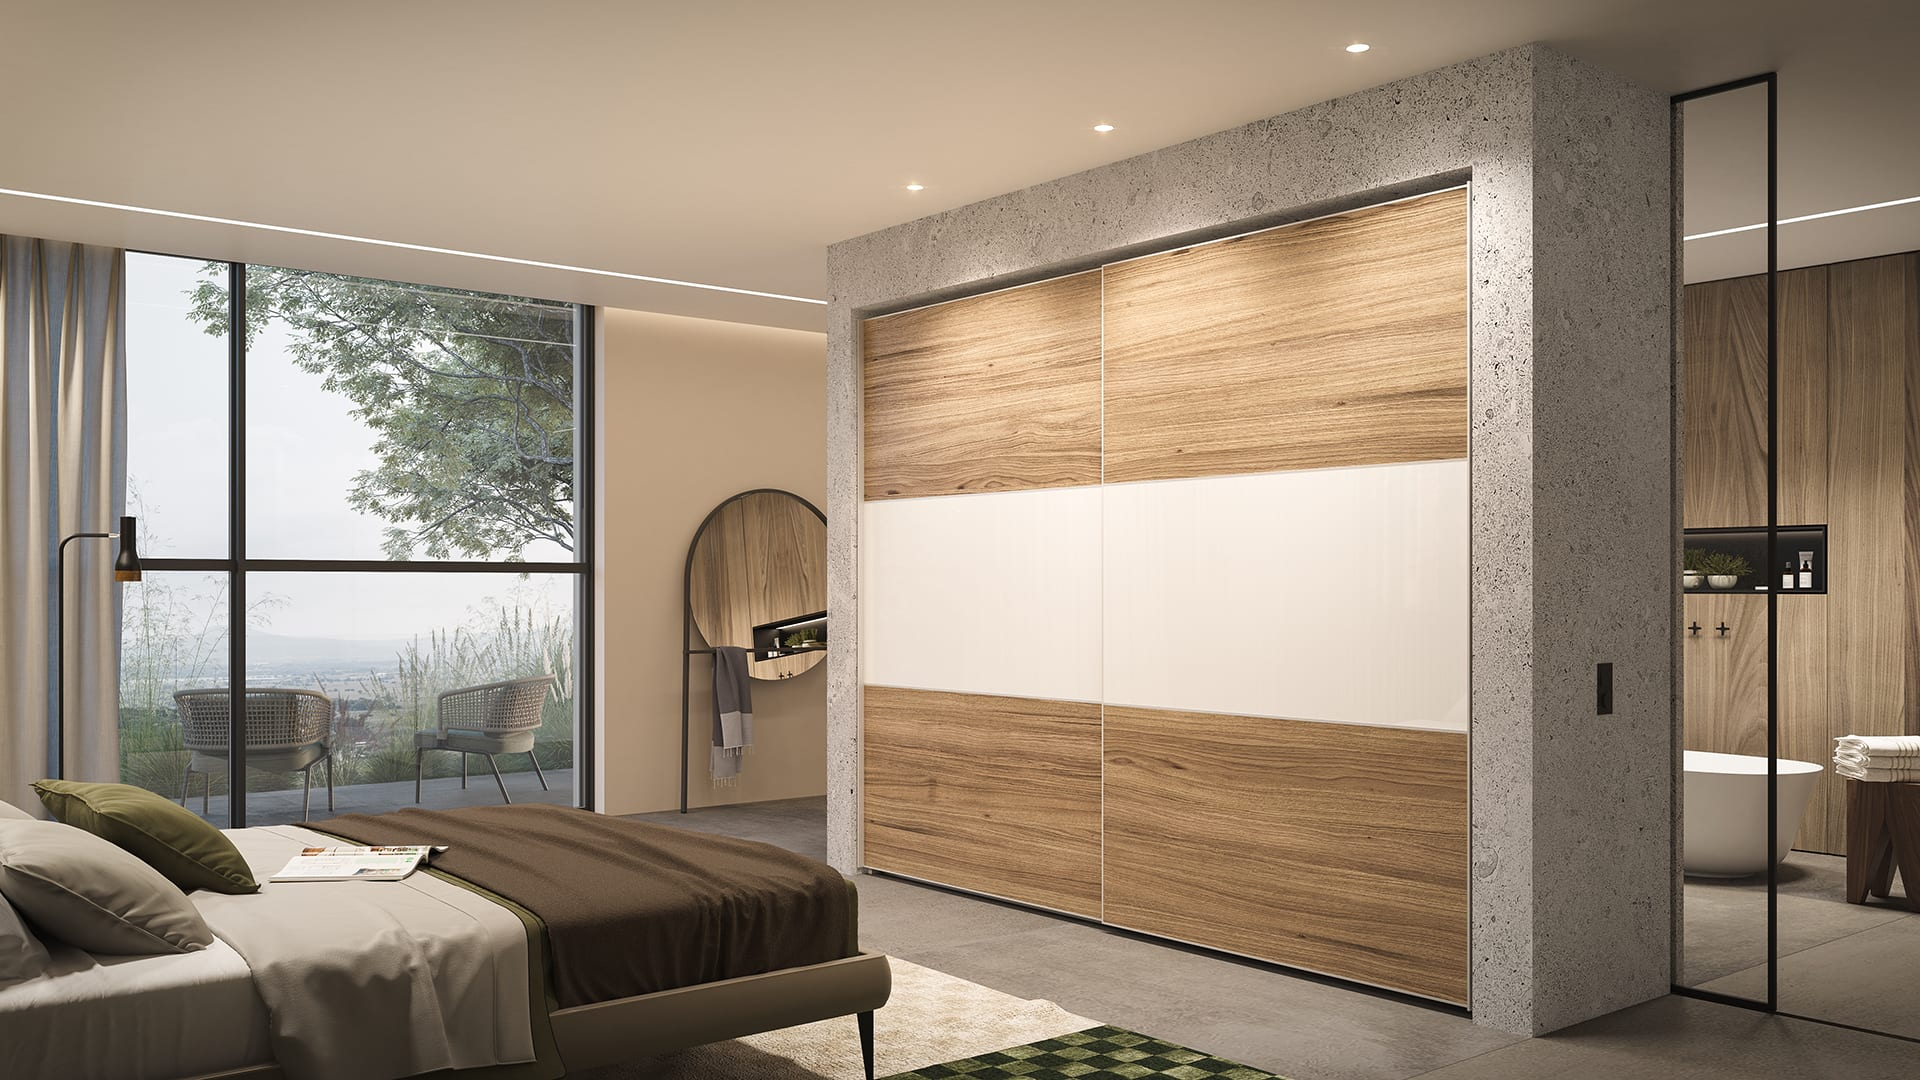 Maayan-Golan_Architectural-Visualization_product-visualization_AGAM-cloests_sliding-door-tv-wood-closet_06